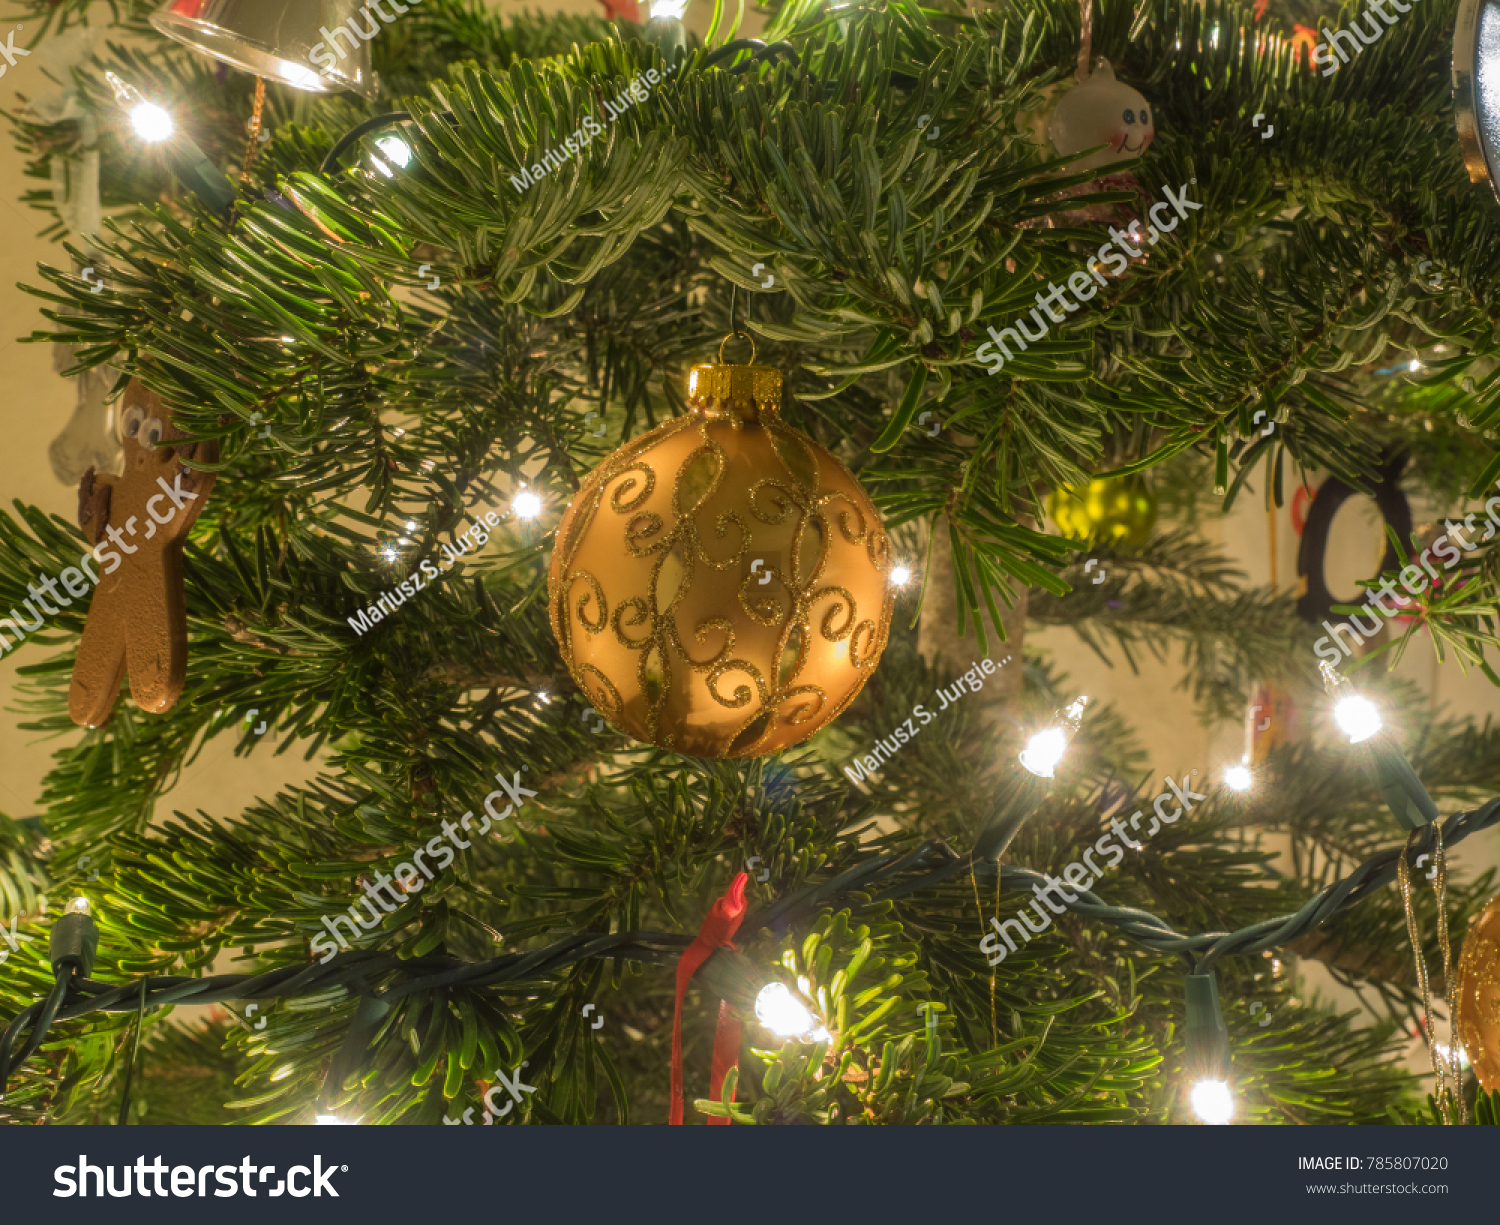 christmas ornaments are decorations usually made of glass metal wood or ceramics that are used to festoon a christmas tree ez canvas